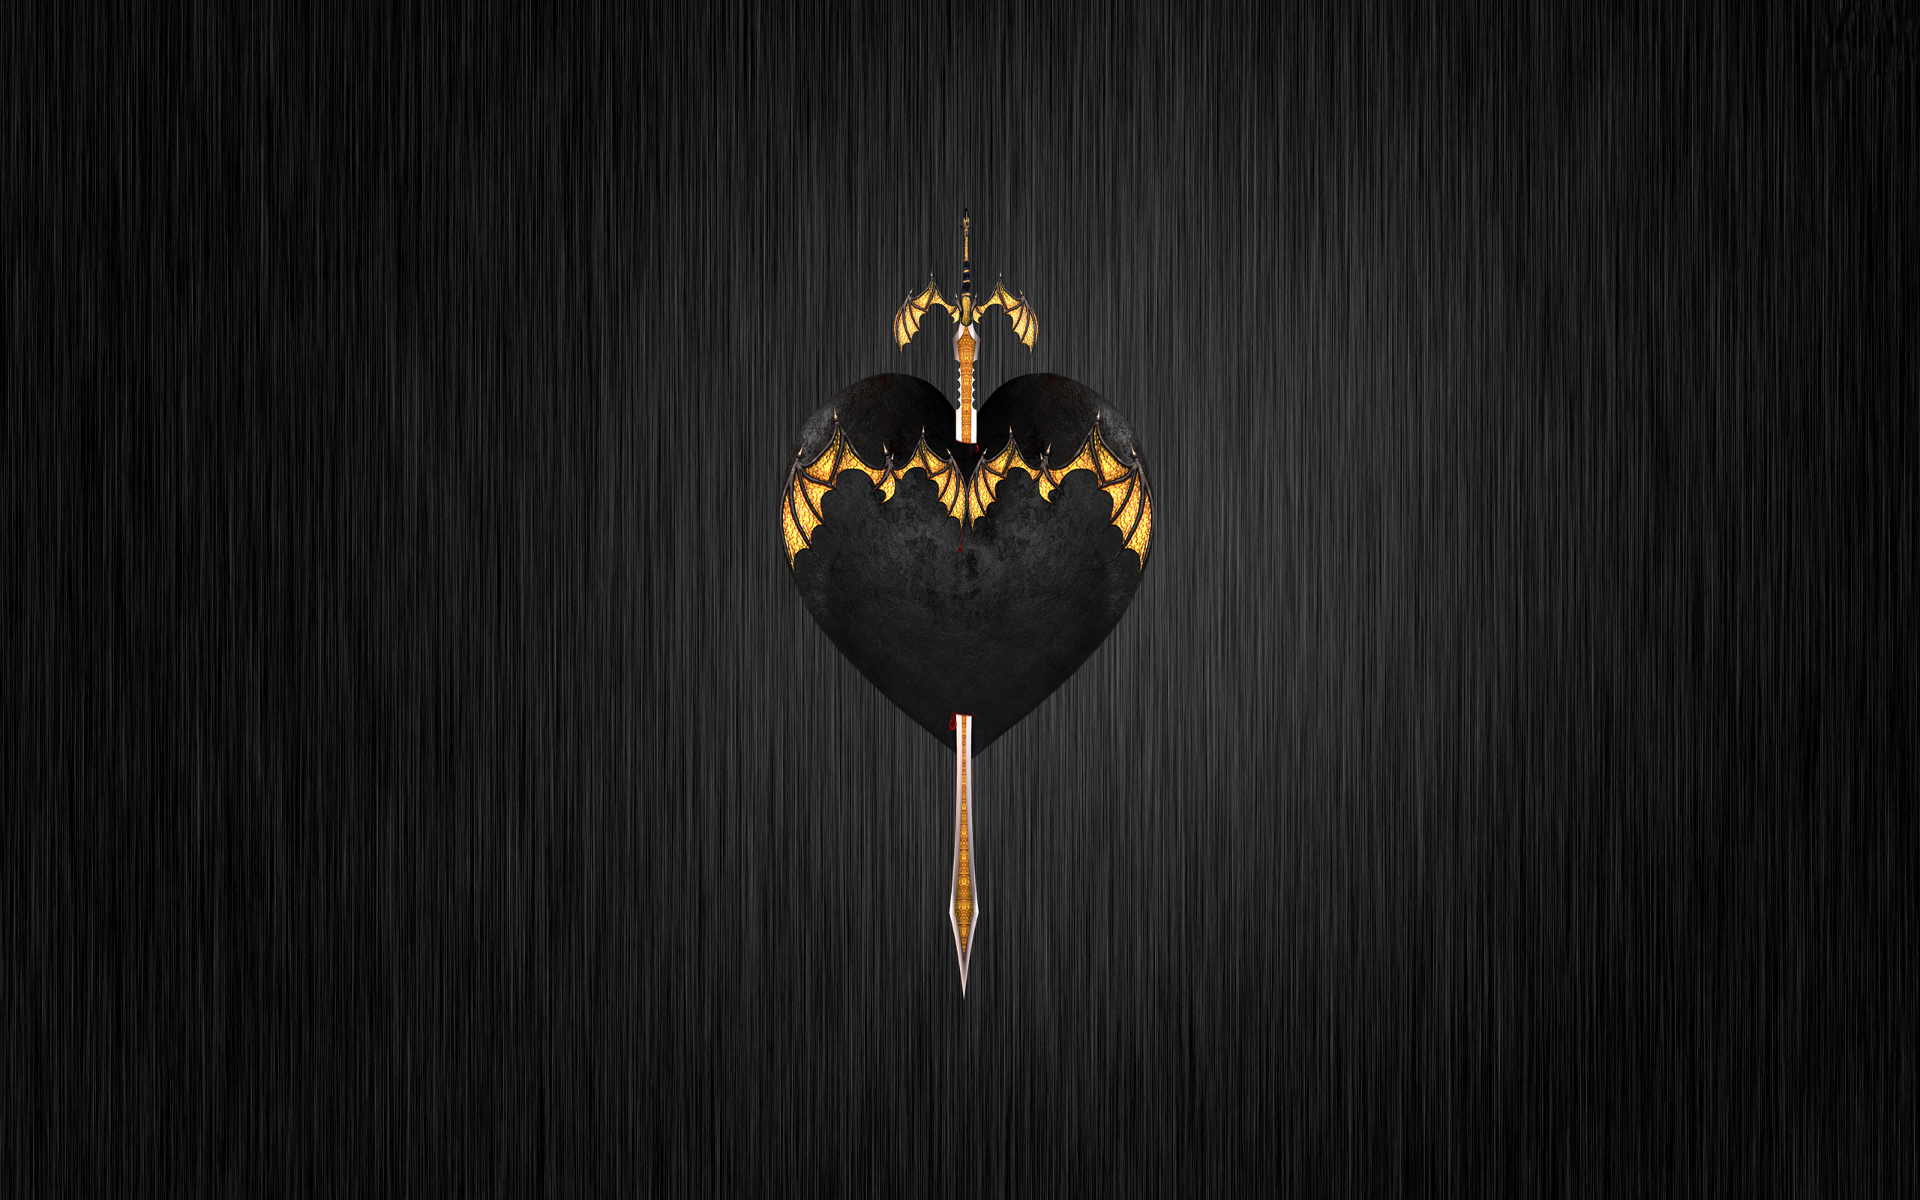 Sword Through Black Heart Fondo De Pantalla Hd Fondo De